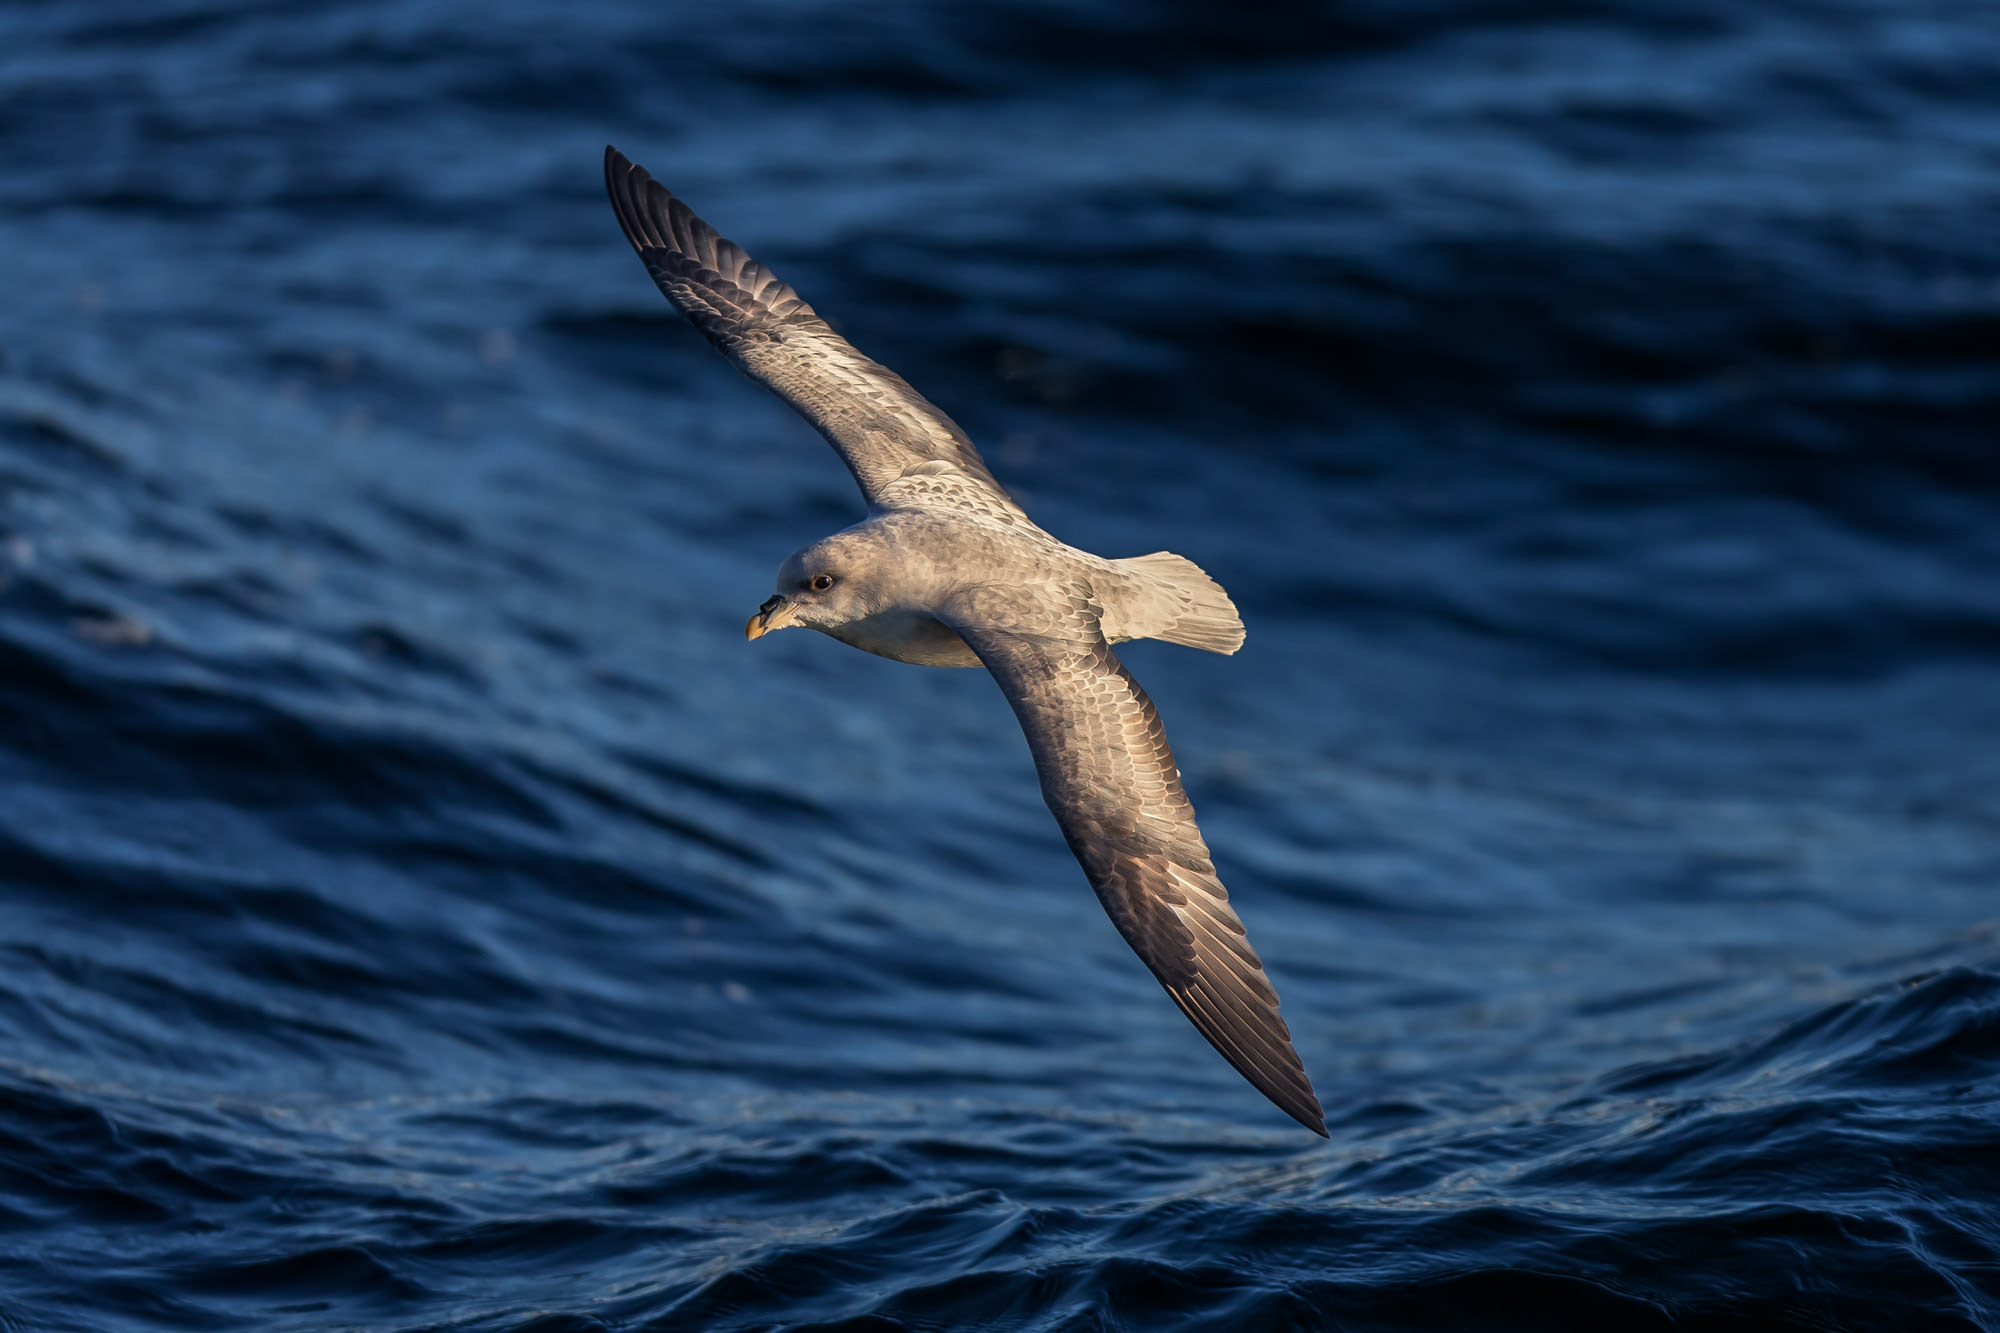 Fulmar, Northern Fulmar, Norway, limited edition, photograph, photo